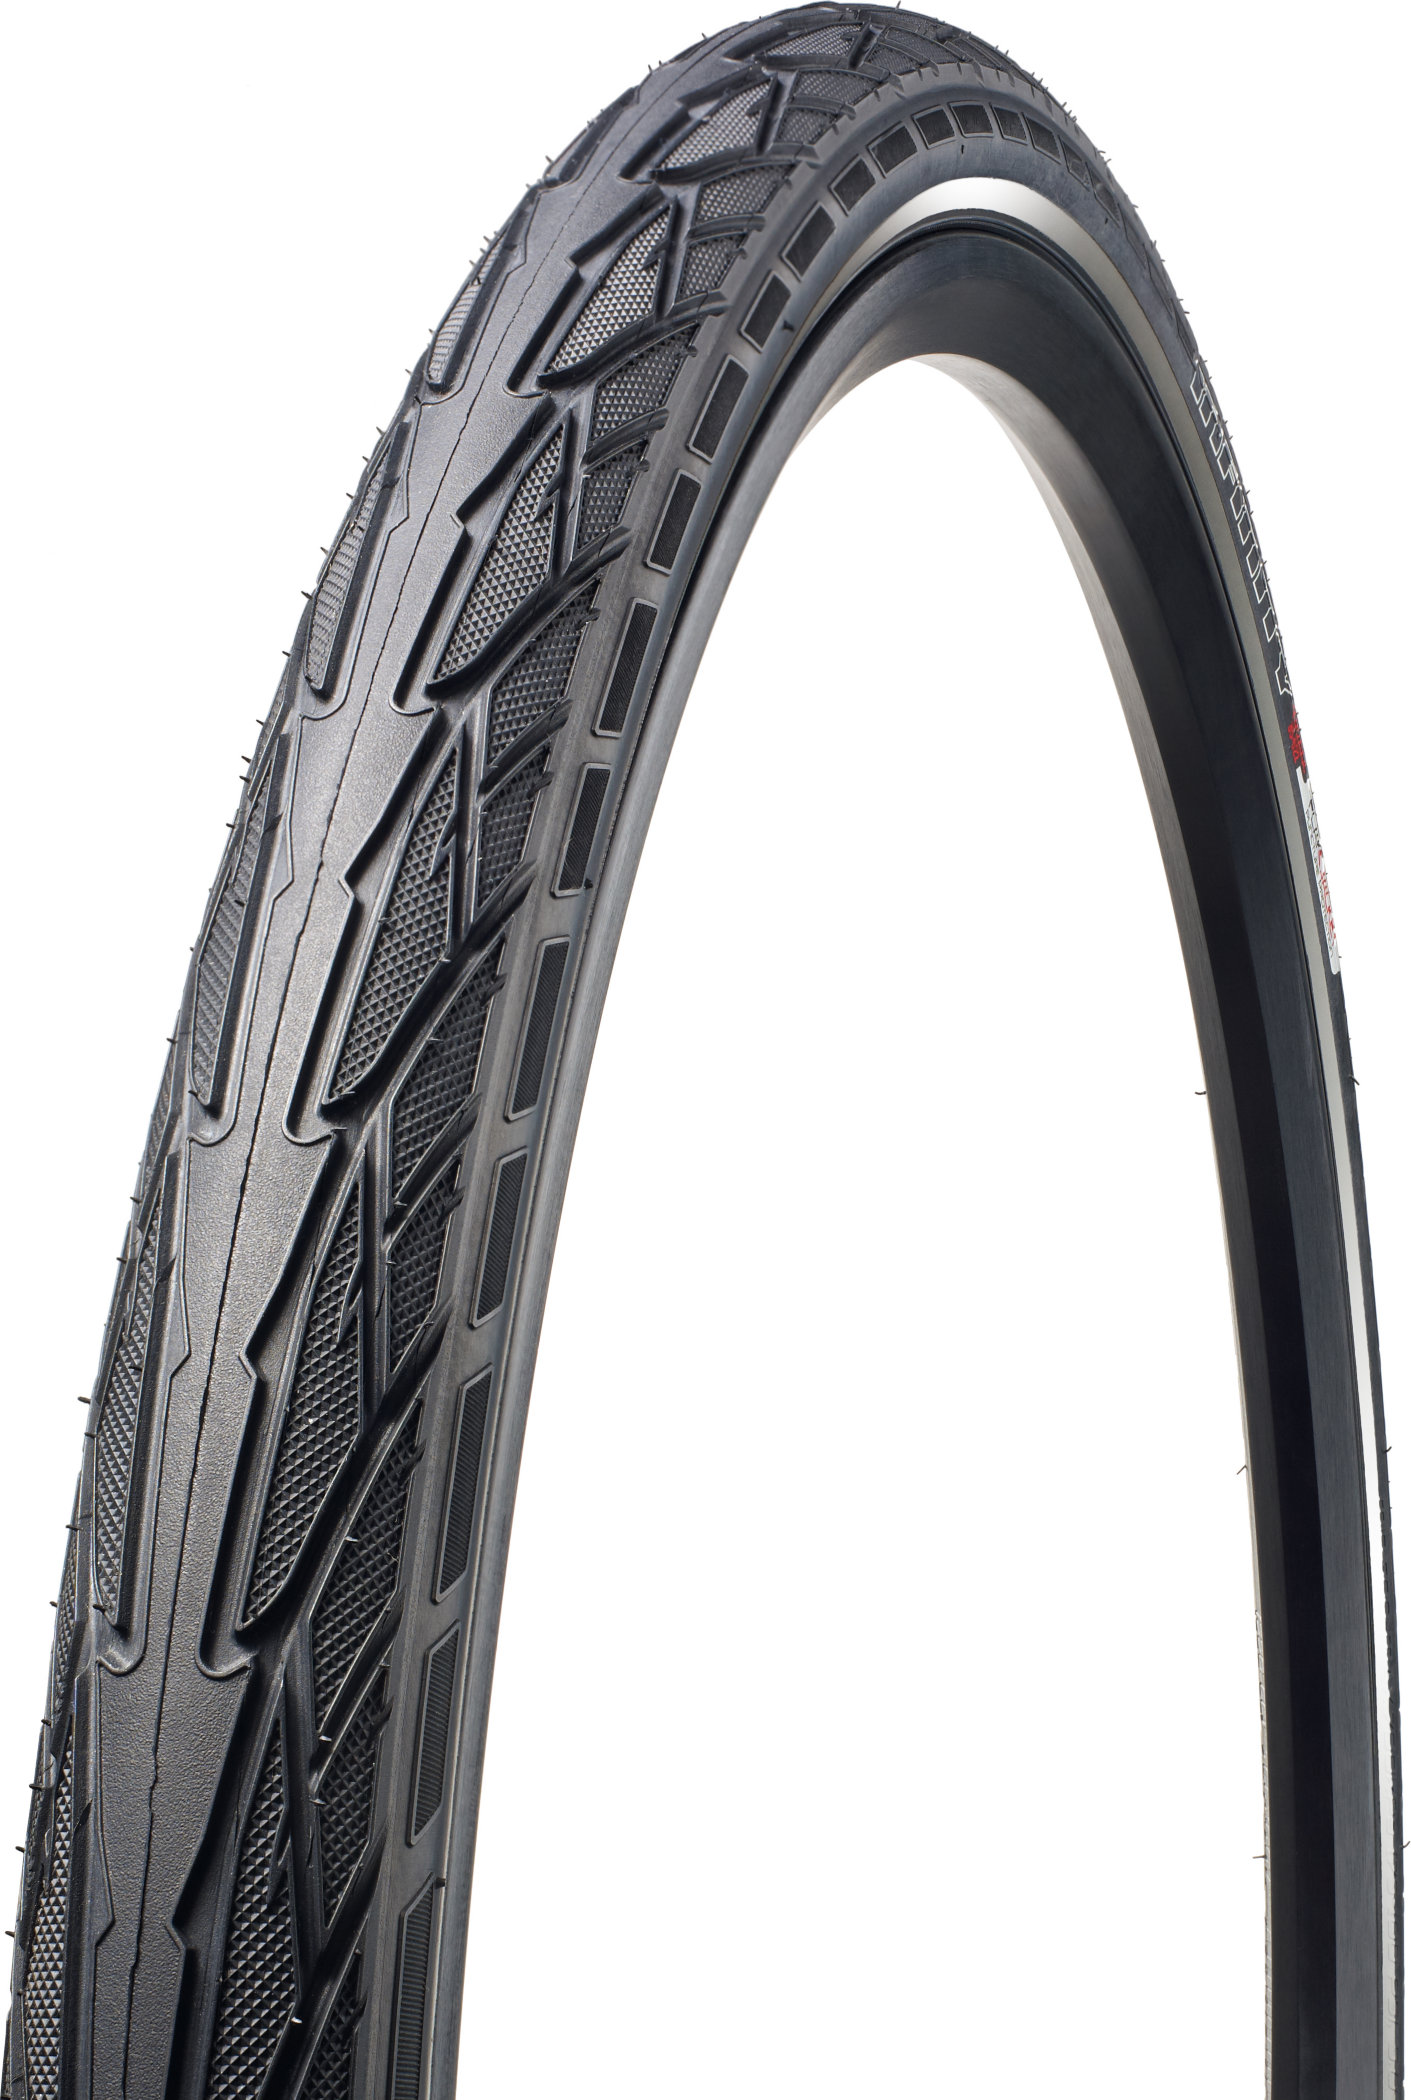 SPECIALIZED INFINITY SPORT REFLECT TIRE 700X35C - Alpha Bikes